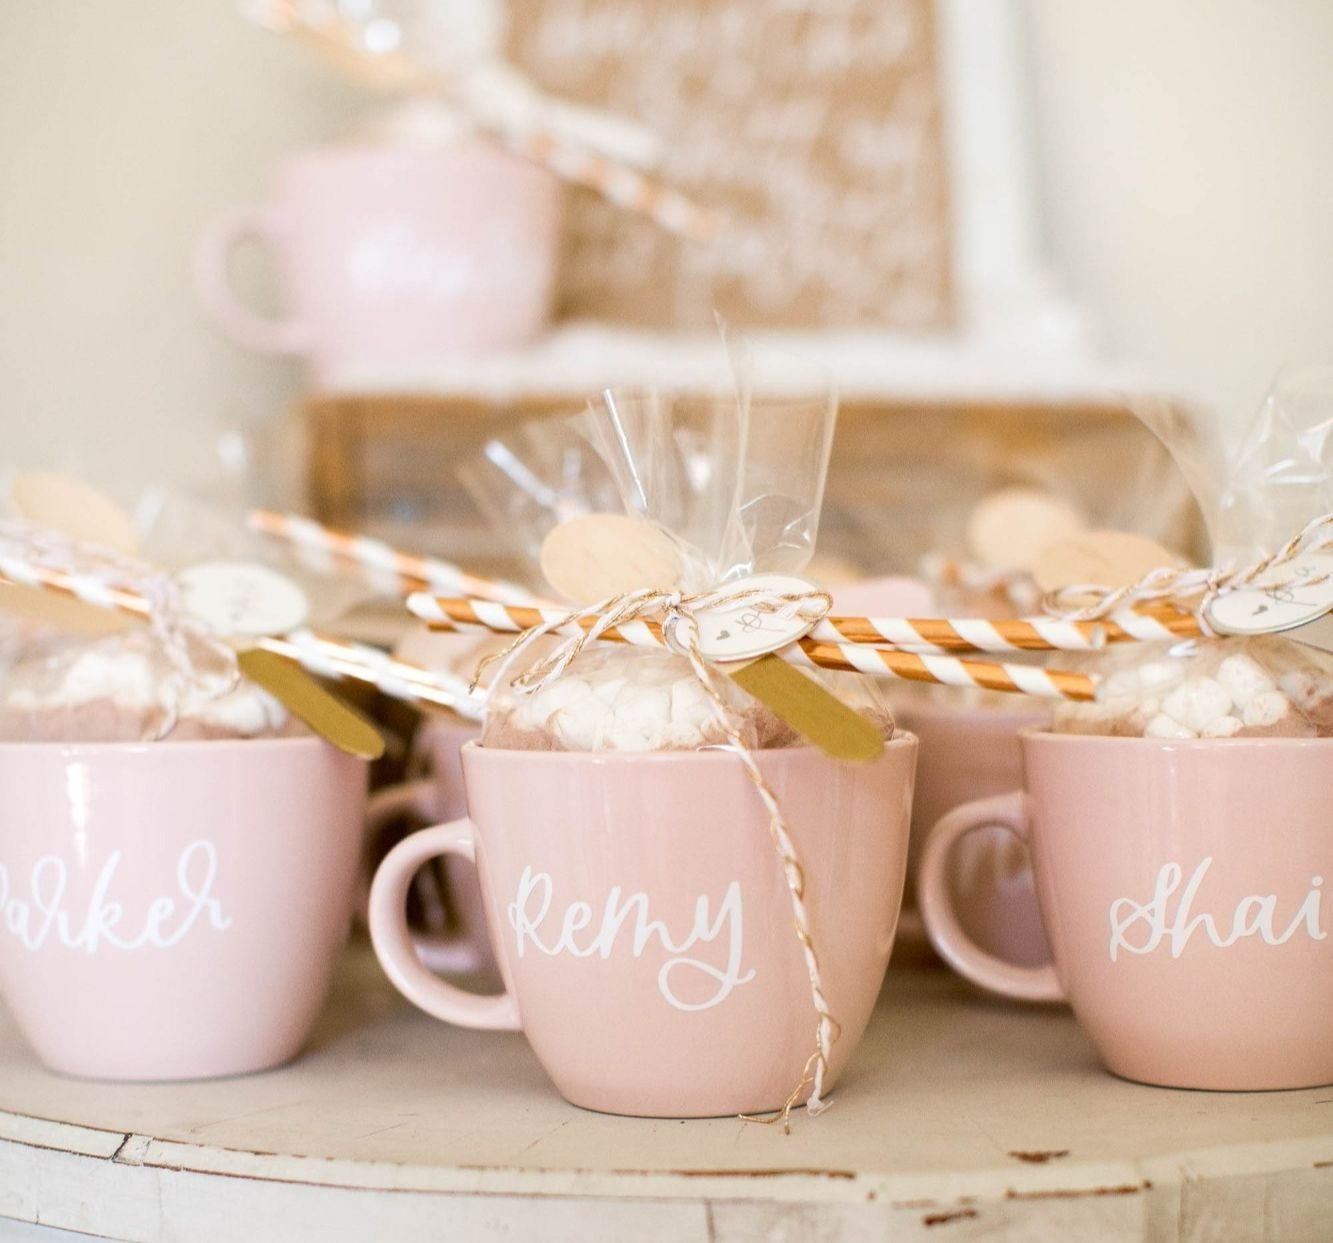 Hot Cocoa Favor Mugs styled by Deets & Things | Black Twine